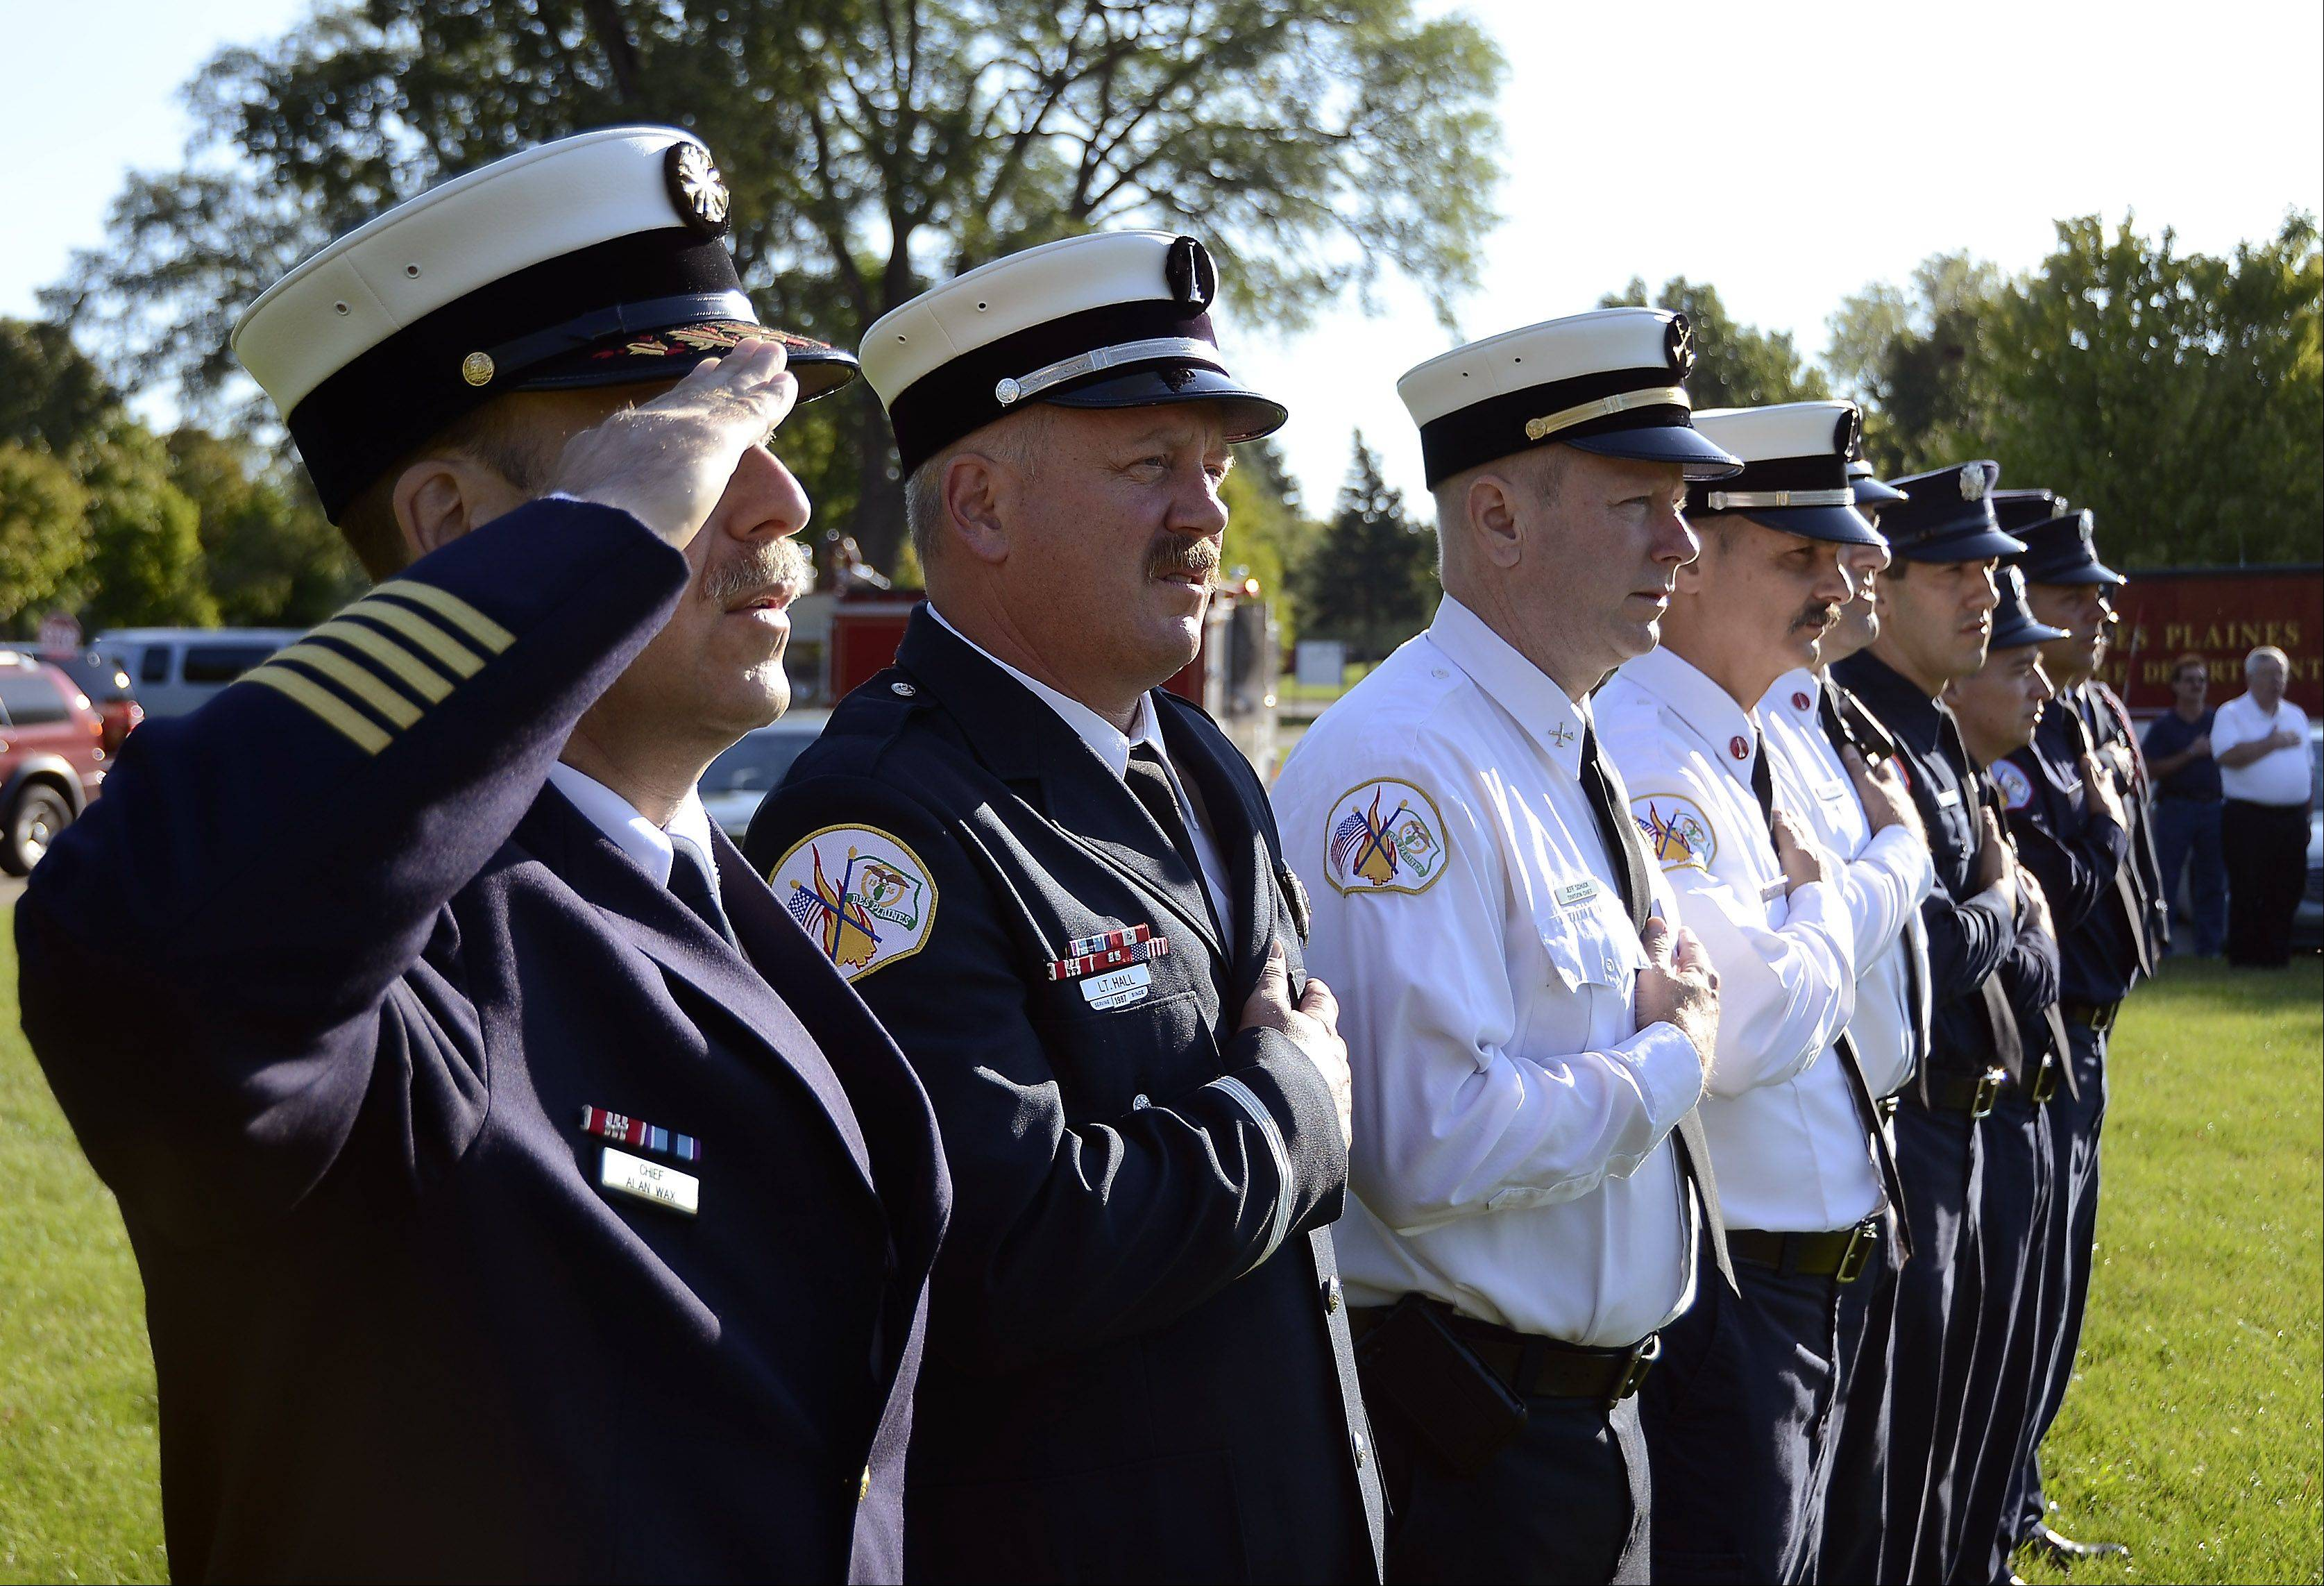 Firefighters and police say The Pledge of Allegiance during a 9/11 Patriot Day ceremony at Maryville Academy in Des Plaines